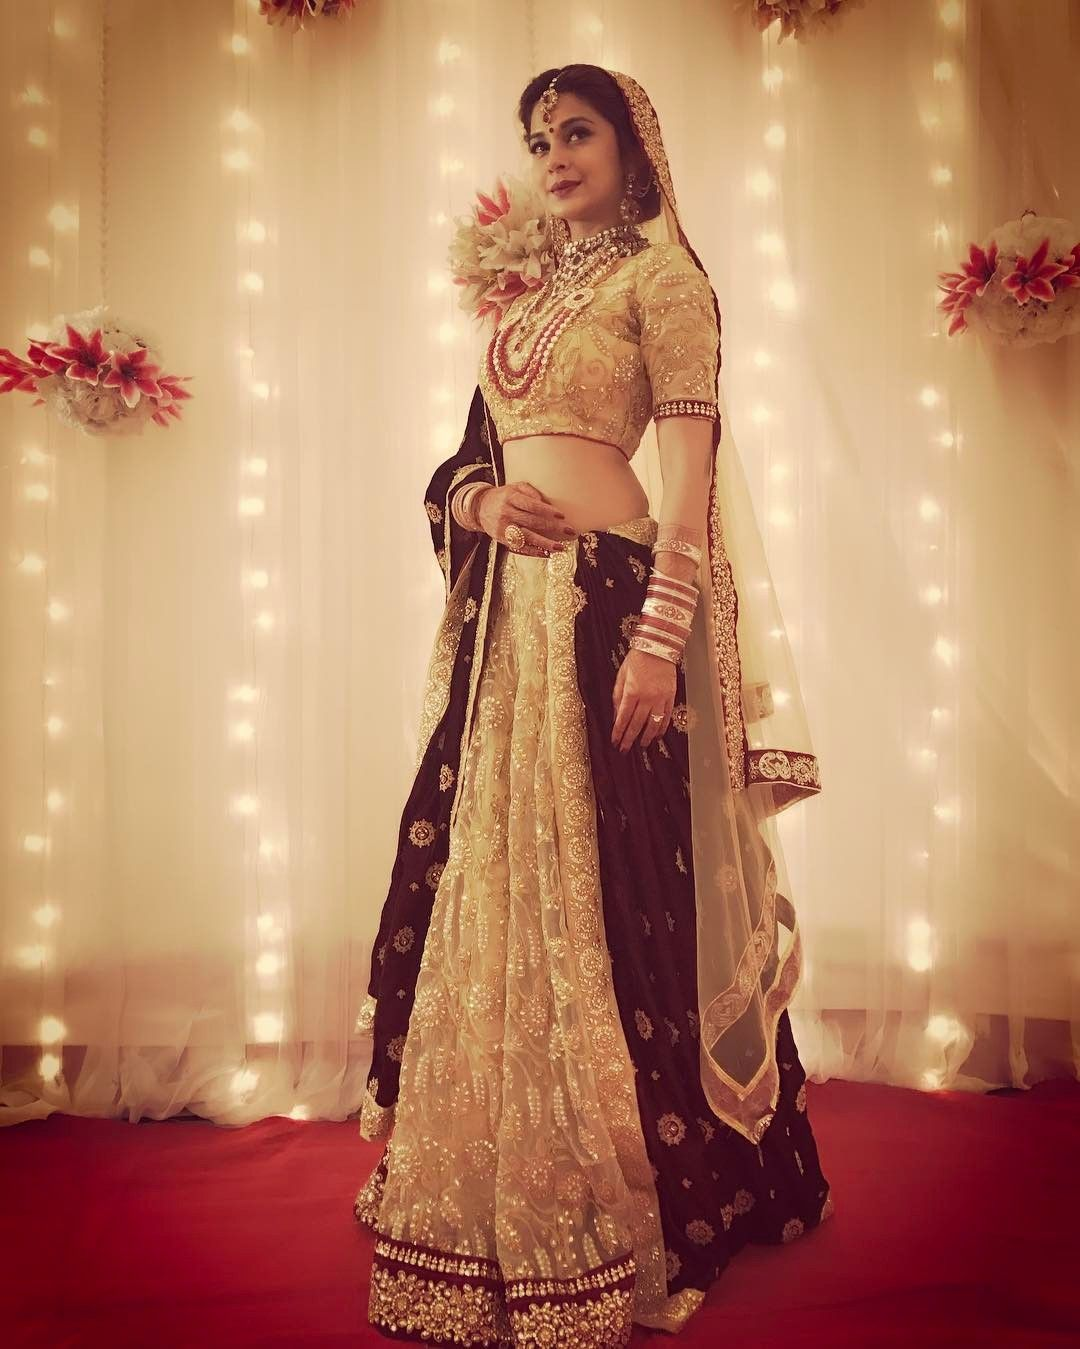 197 9k Likes 1 713 Comments Jennifer Winget Jenniferwinget1 On Instagram Wedding Vows And Wows Indian Wedding Outfits Indian Dresses Indian Bridal Wear